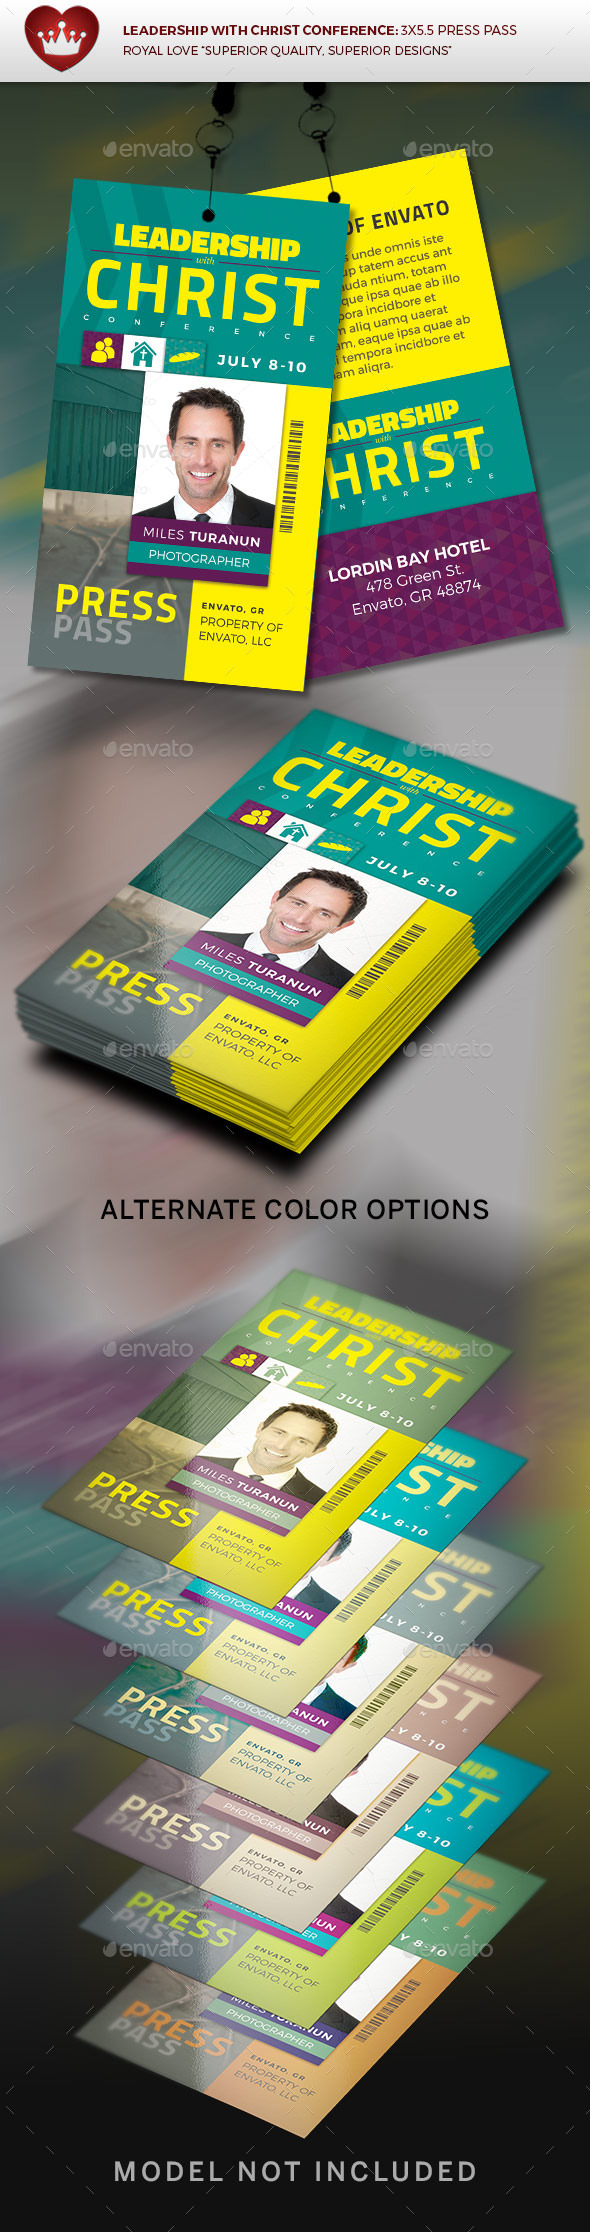 leadership with christ conference press pass by royallove graphicriver. Black Bedroom Furniture Sets. Home Design Ideas